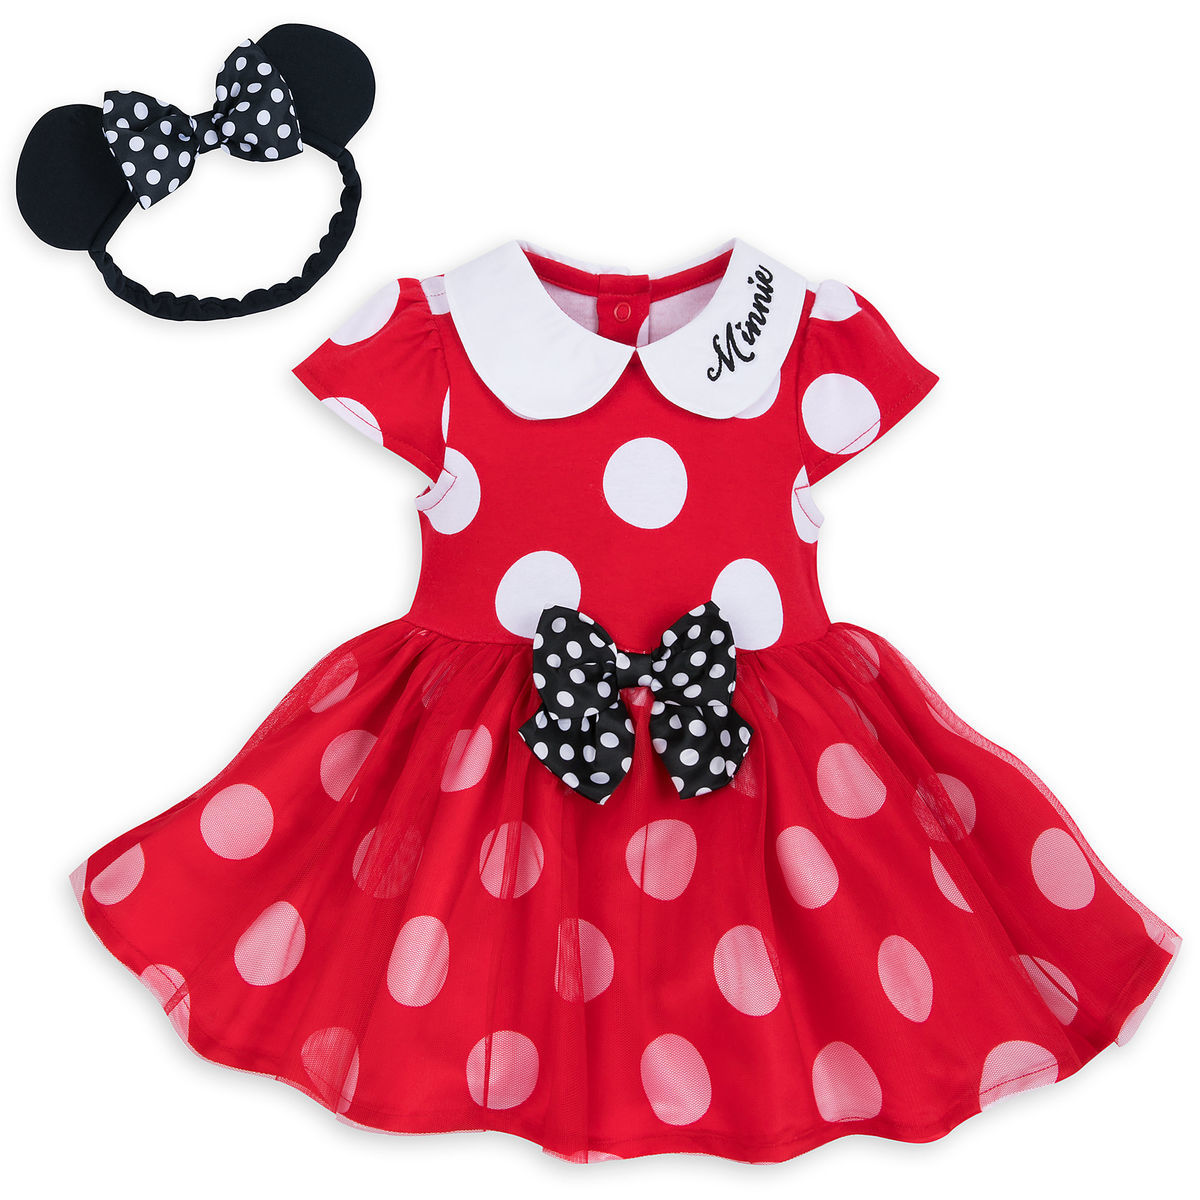 68f1c4edd Add to My Lists. Disney Bodysuit Dress for Baby - Minnie Mouse ...